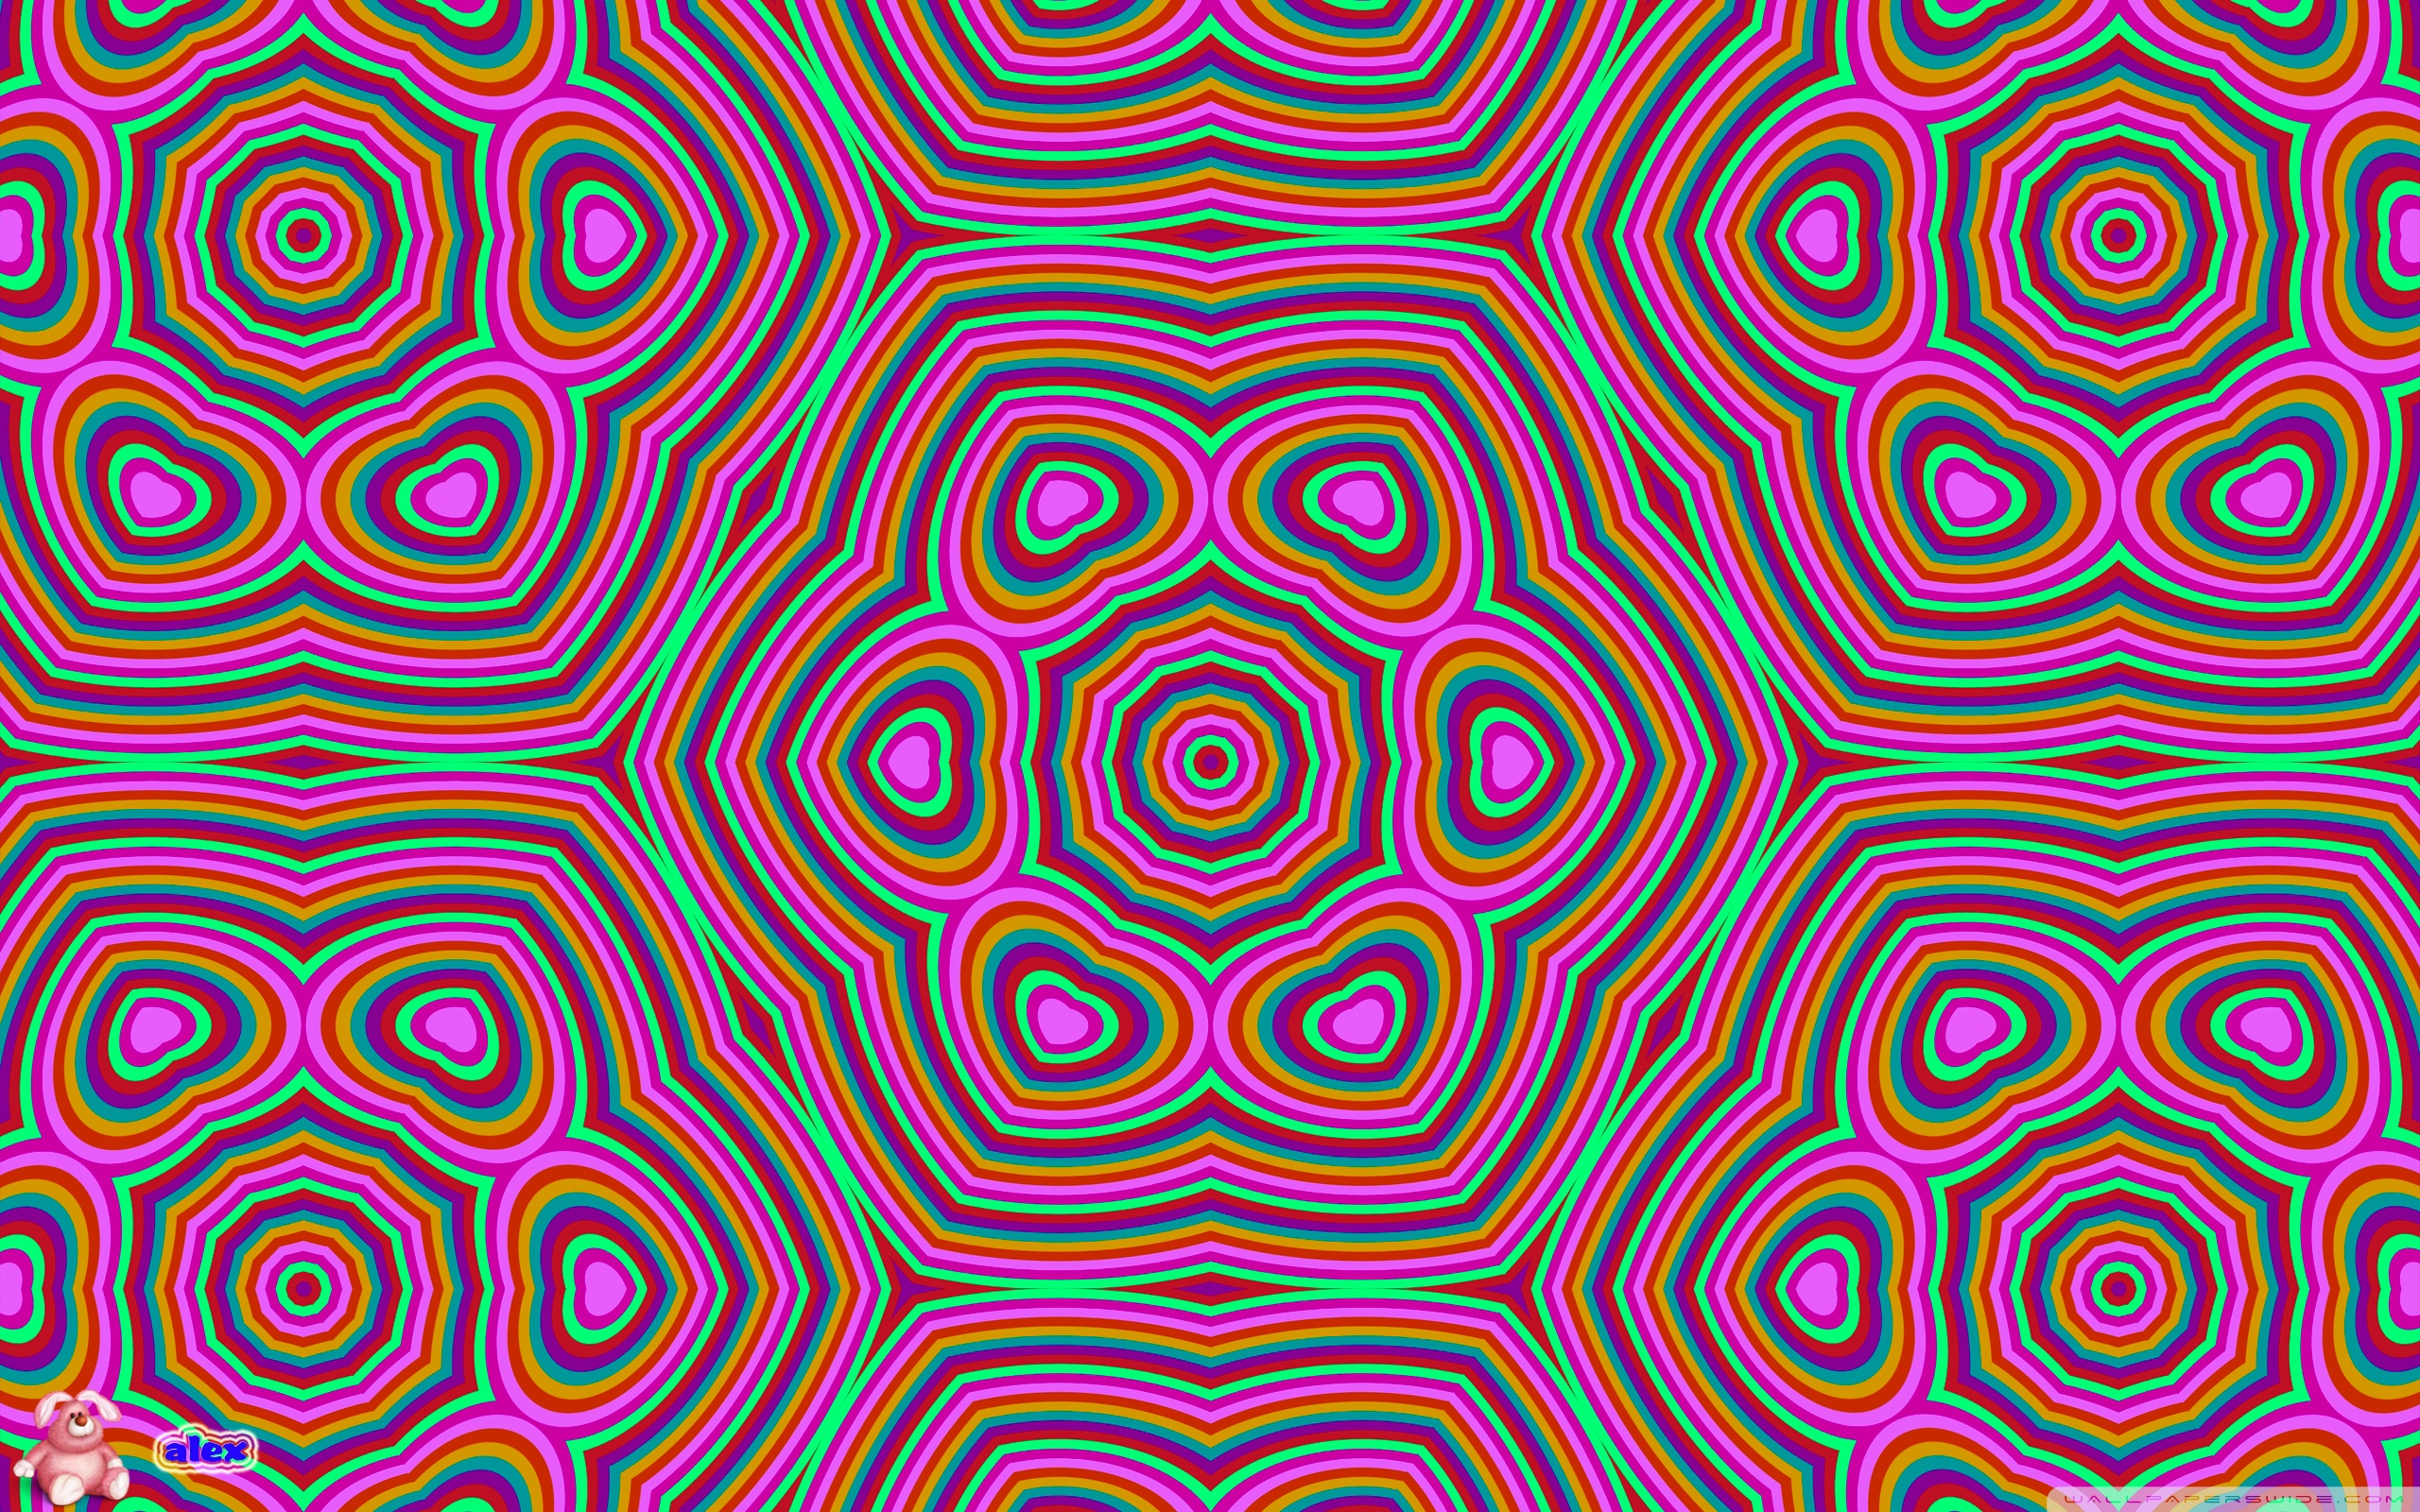 Cool Wallpaper Macbook Psychedelic - psychedelic_love-wallpaper-2560x1600  Photograph_6911100.jpg